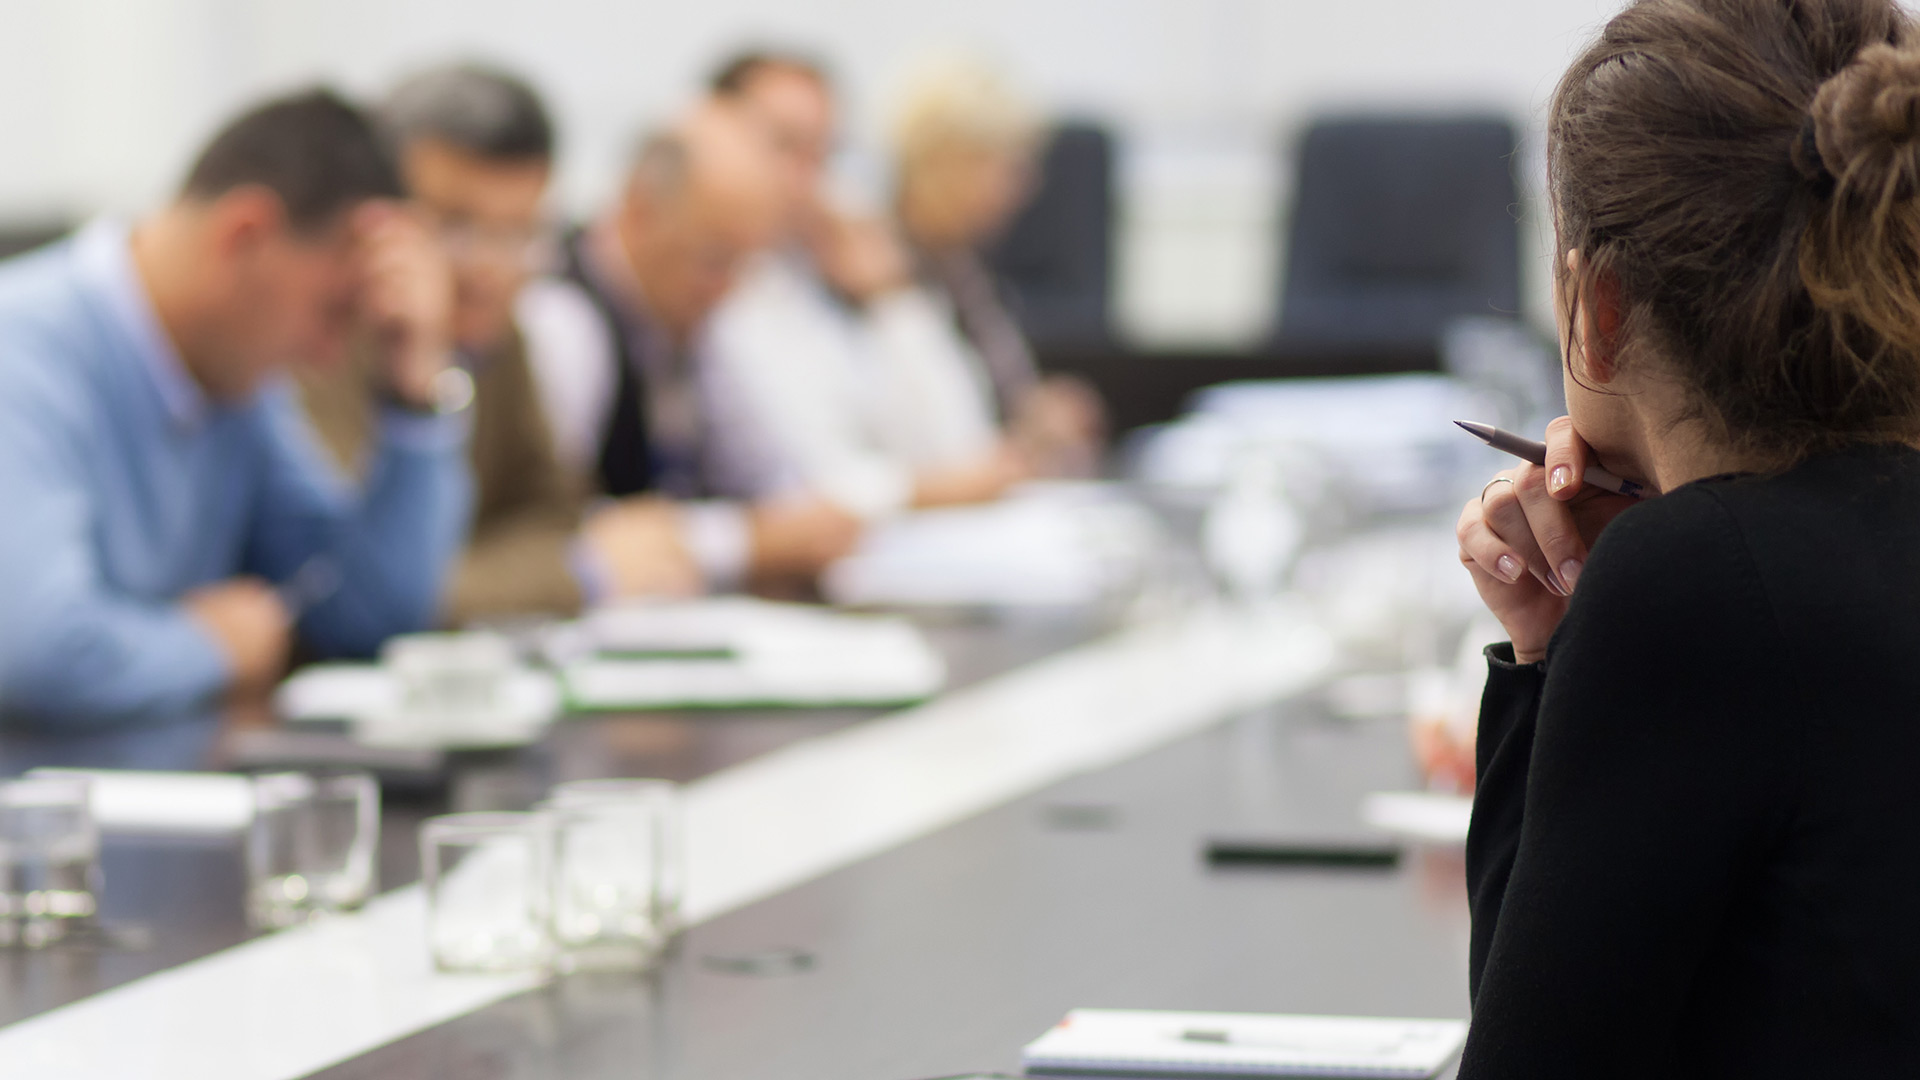 Woman's profile looking at boardroom table of people working